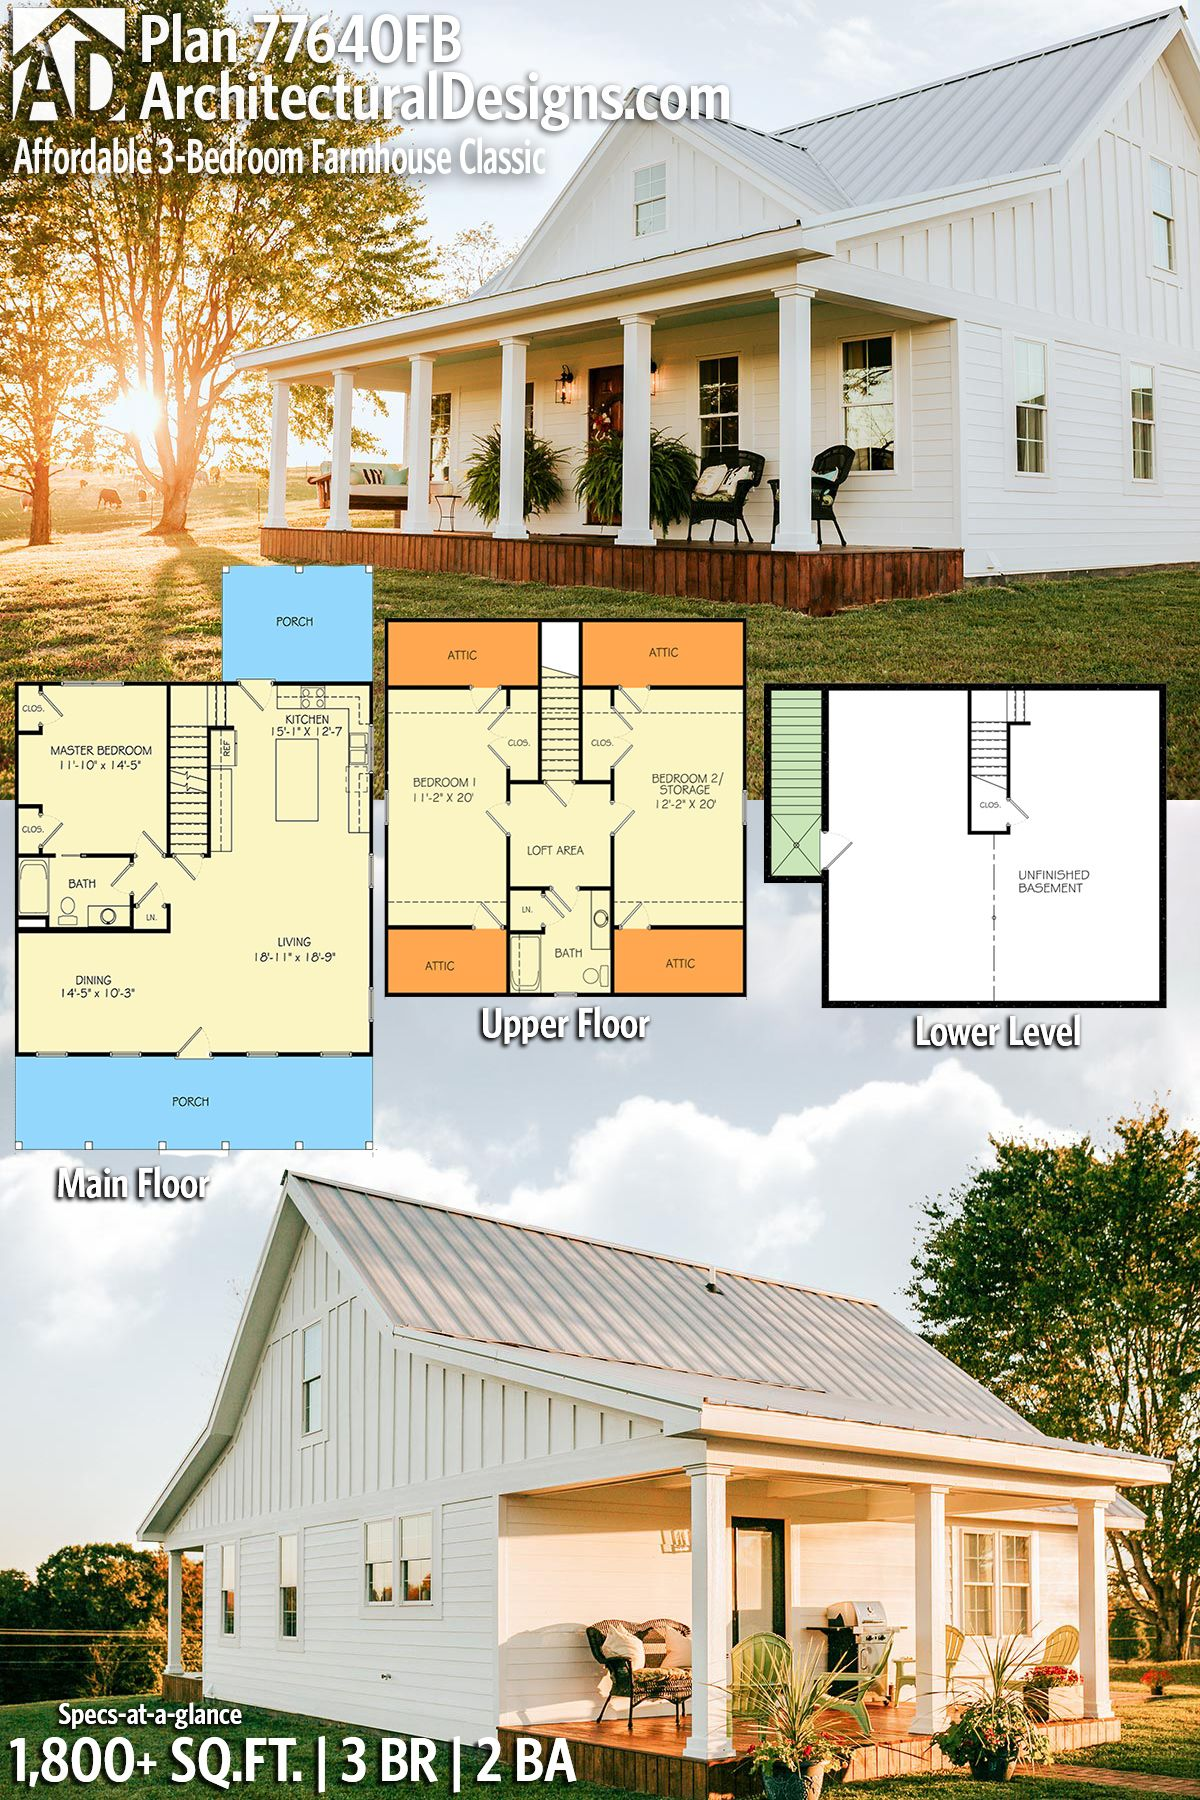 Architectural designs affordable farmhouse classic plan fb beds baths also bright and airy country architects bath rh pinterest